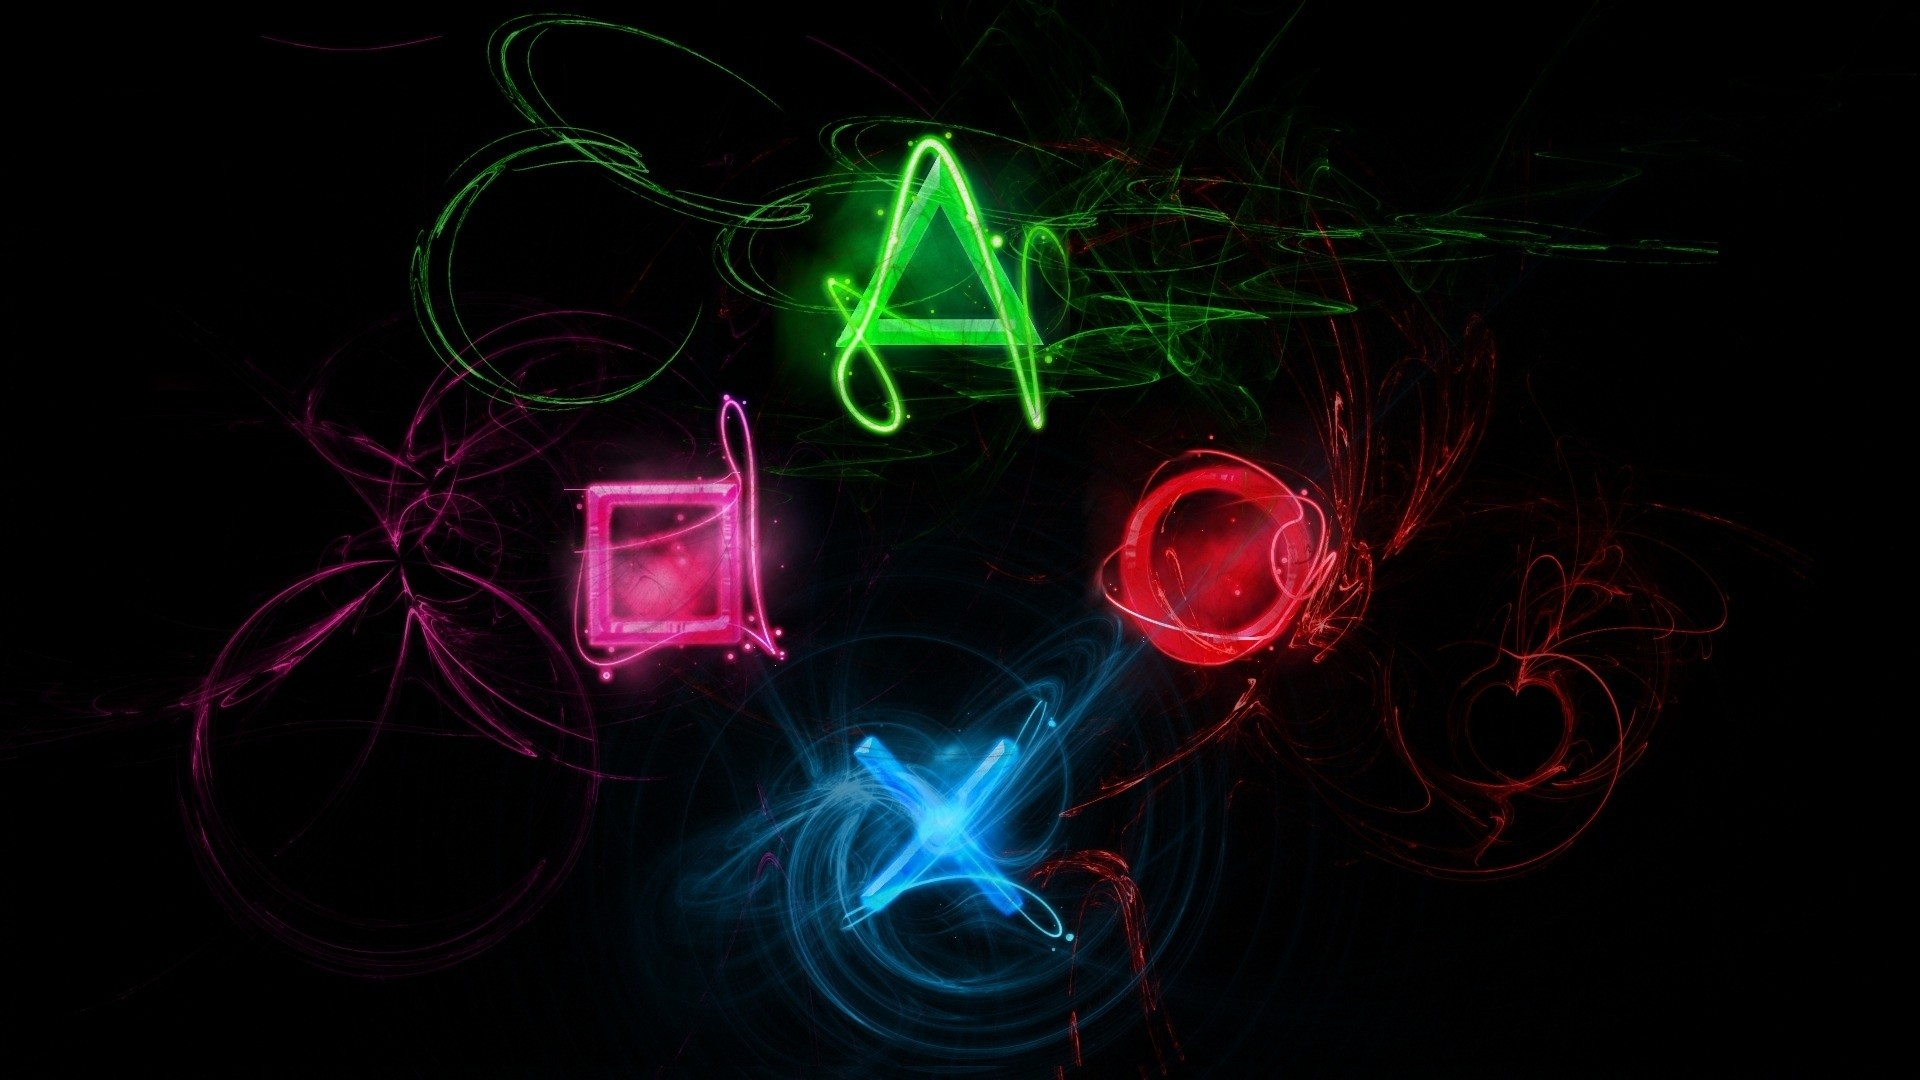 Wallpaper For Ps3 79 Pictures